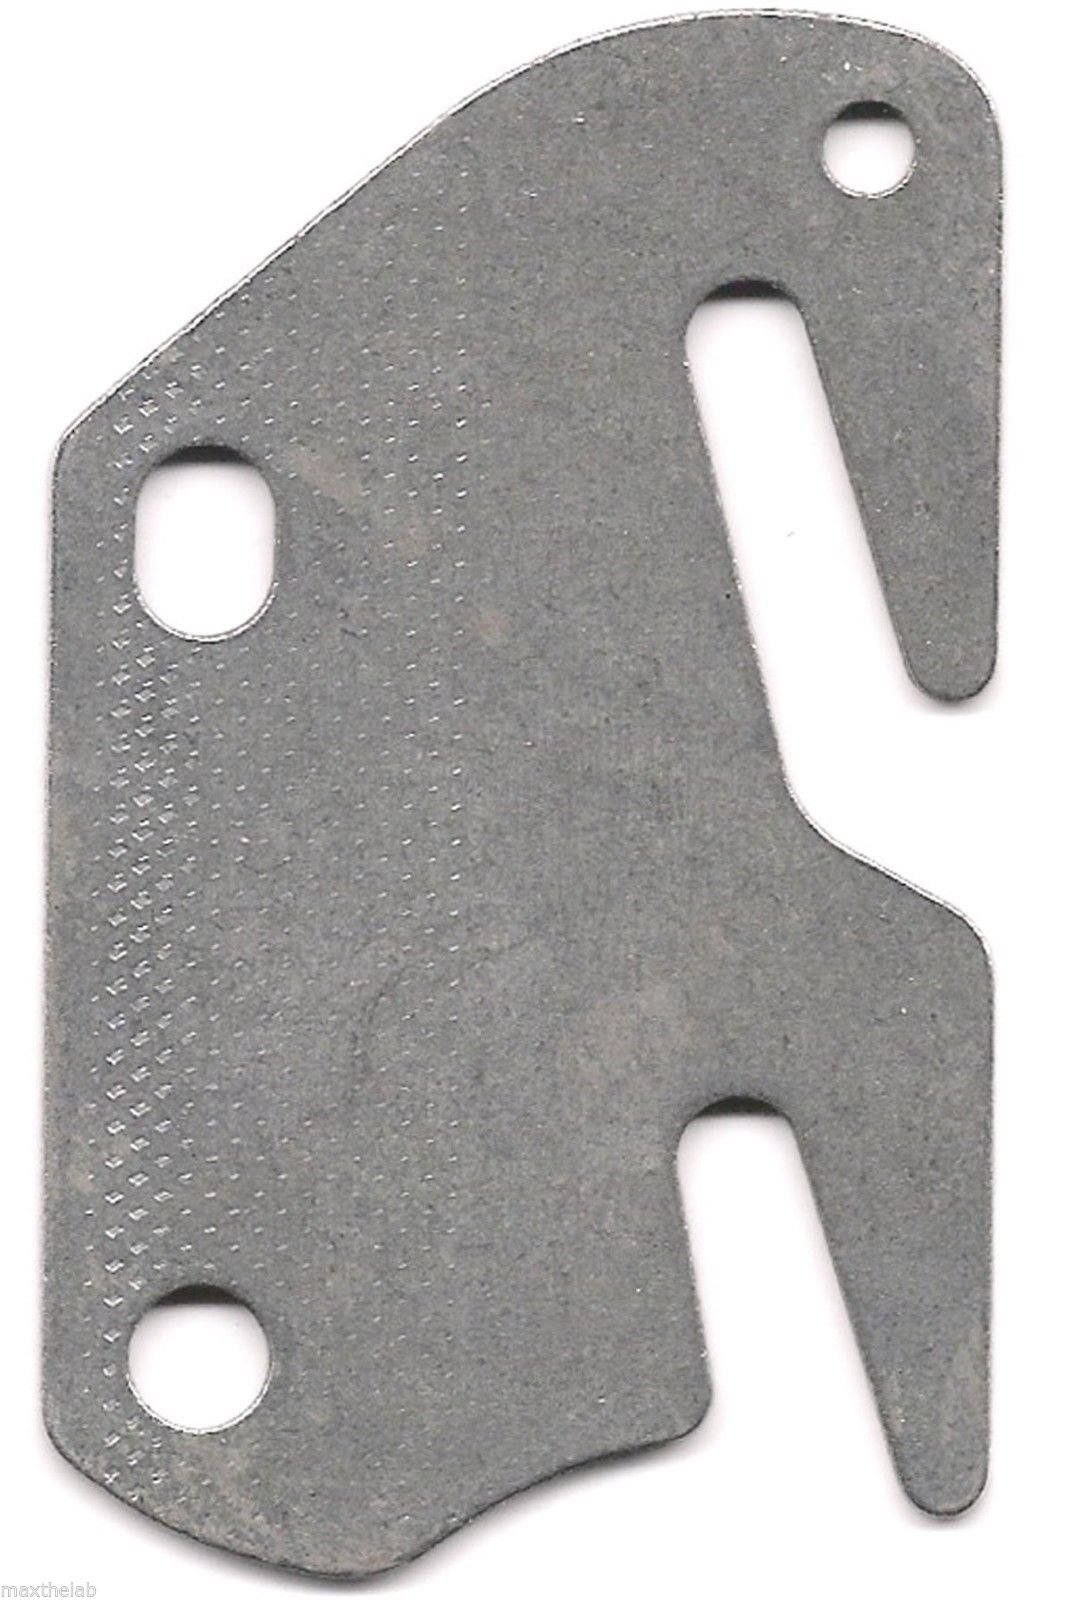 Bed Rail Double Hook Flat Plate Fits 2'' Bracket or Bed Post 13 ga. Steel USA by Bed Replacement Parts